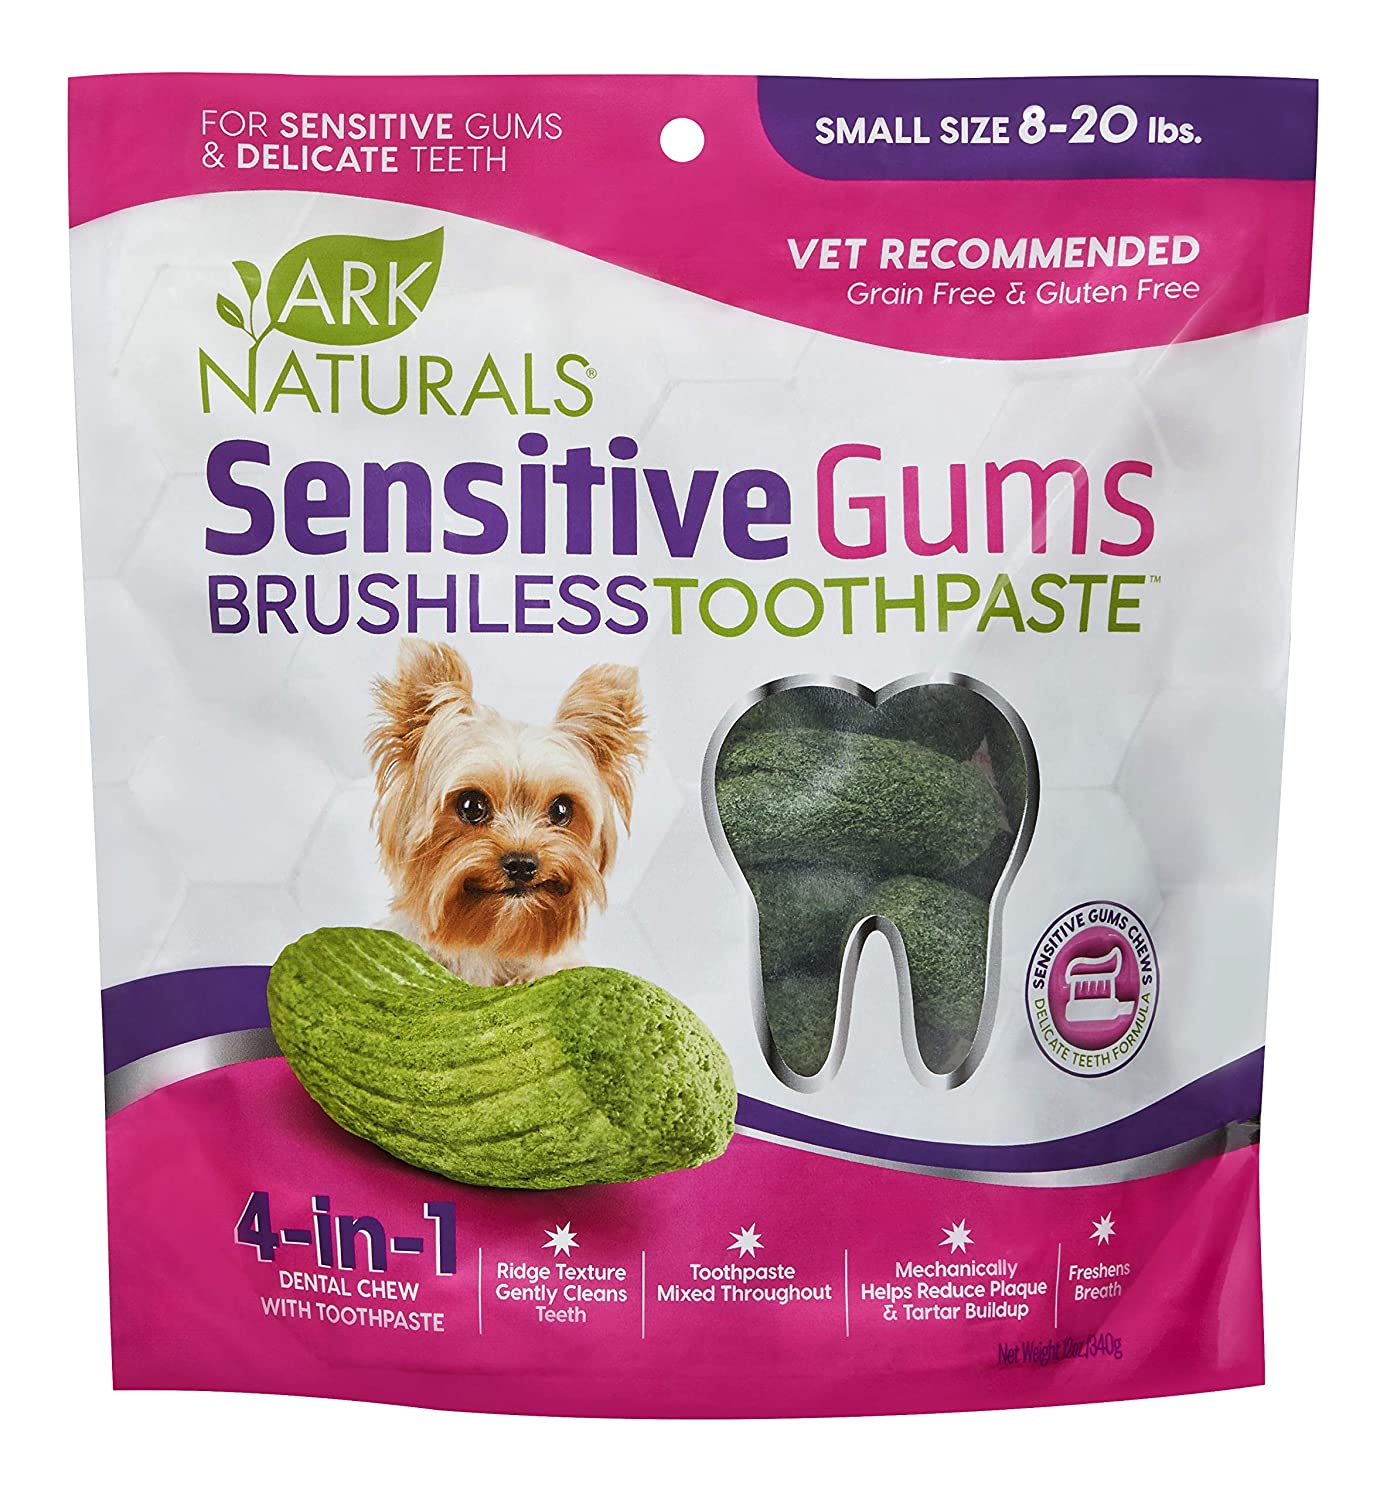 ARK NATURALS Brushless Toothpaste for Sensitive Gums Vet Recommended for Plaque 1 Pack Dog Dental Chews for Small Breeds Bacteria /& Tartar Control